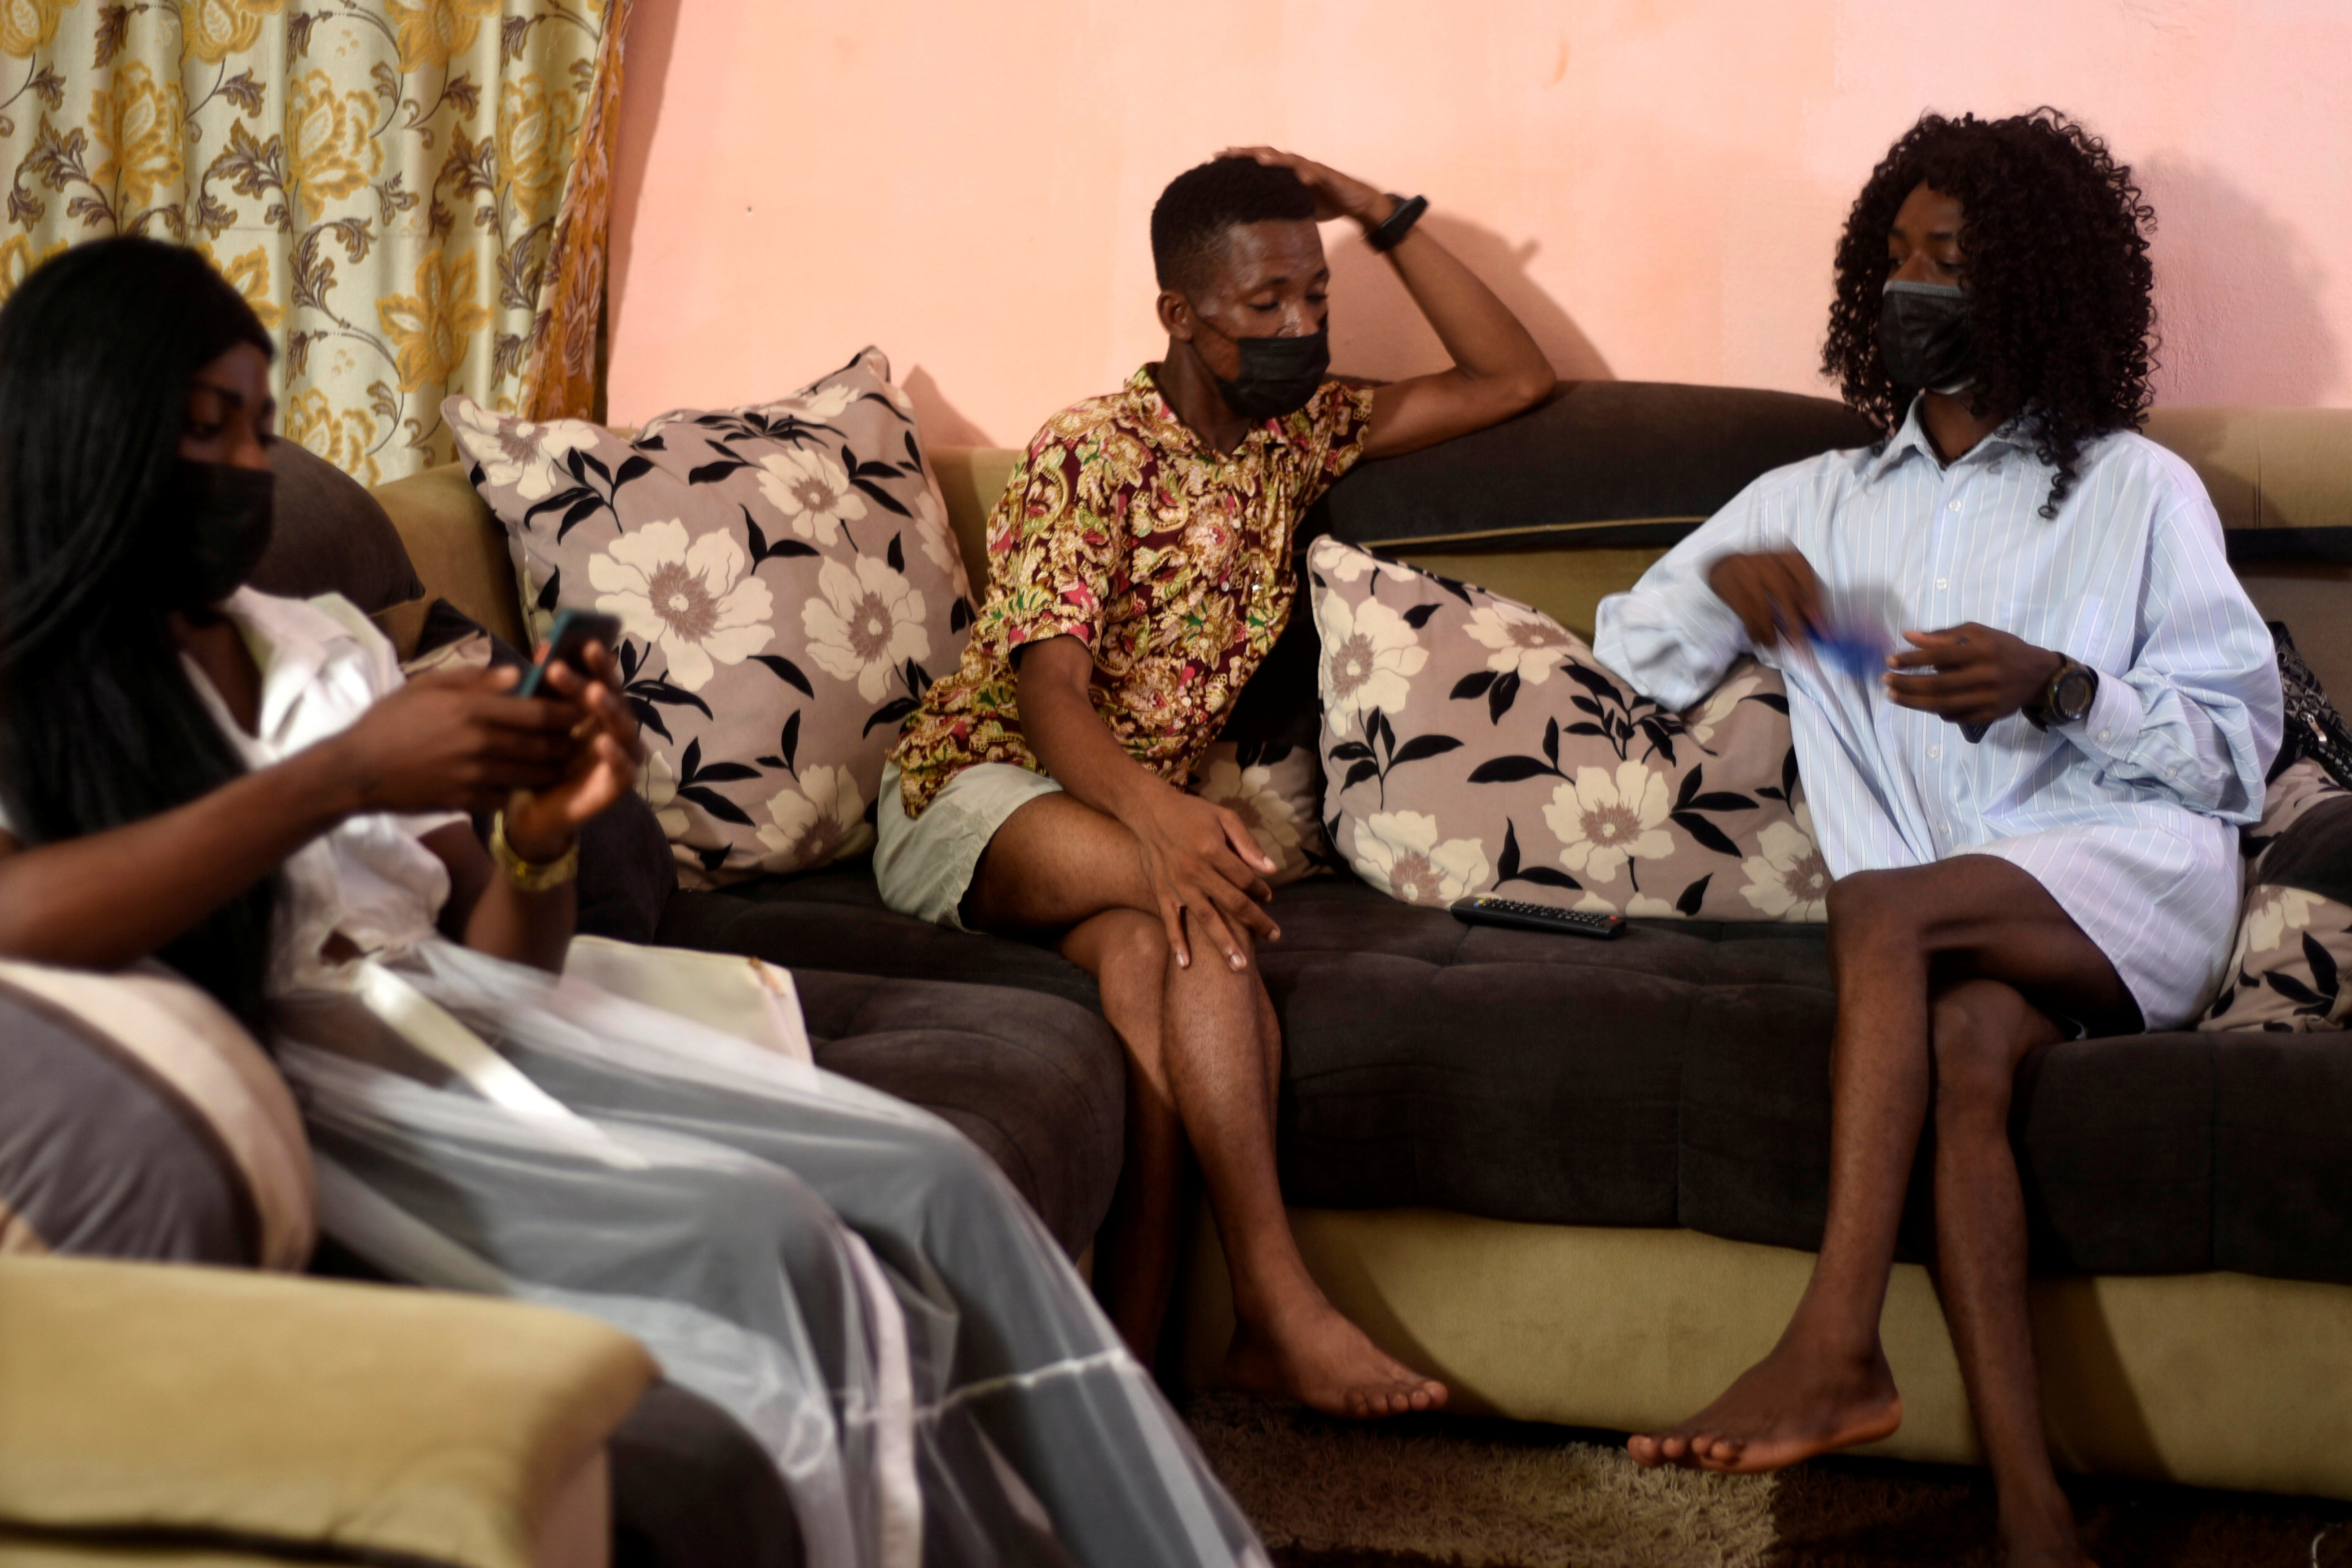 Transgender women Lumiere, 24, Blanche Bailli, 26 and Shakira visit their friend Nkwain Hamlet, a gay-rights activist in Douala, Cameroon April 24, 2021.   REUTERS/Chantal Edie